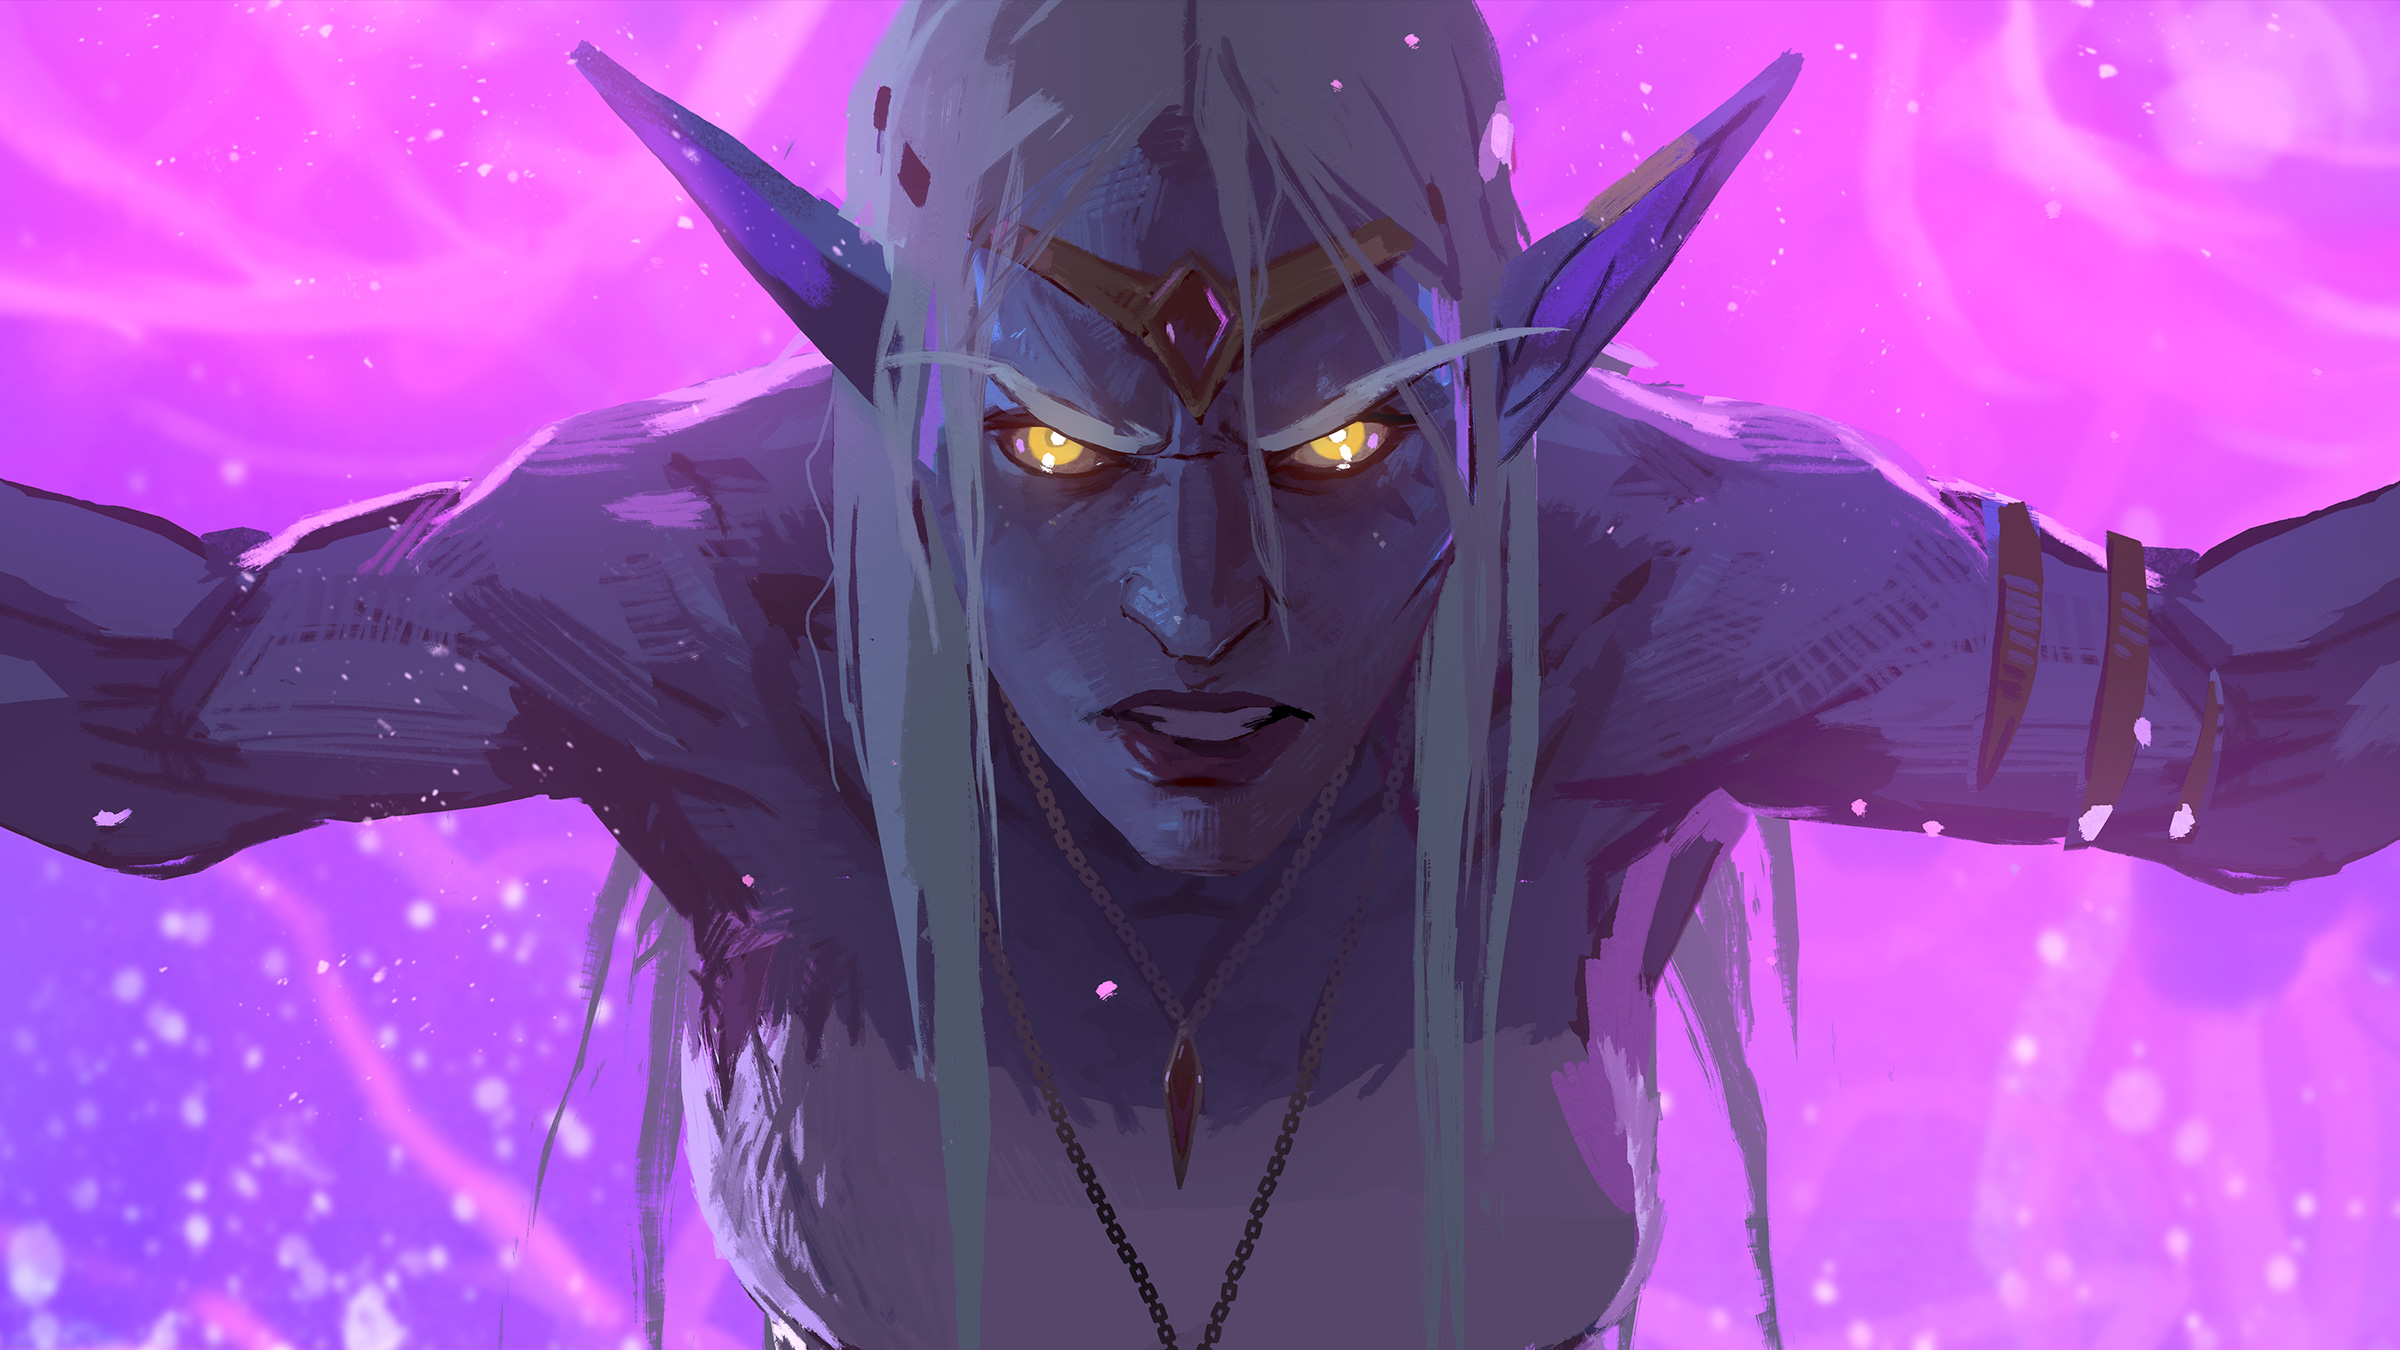 https://xgm.guru/p/wow/faces-of-war-azshara